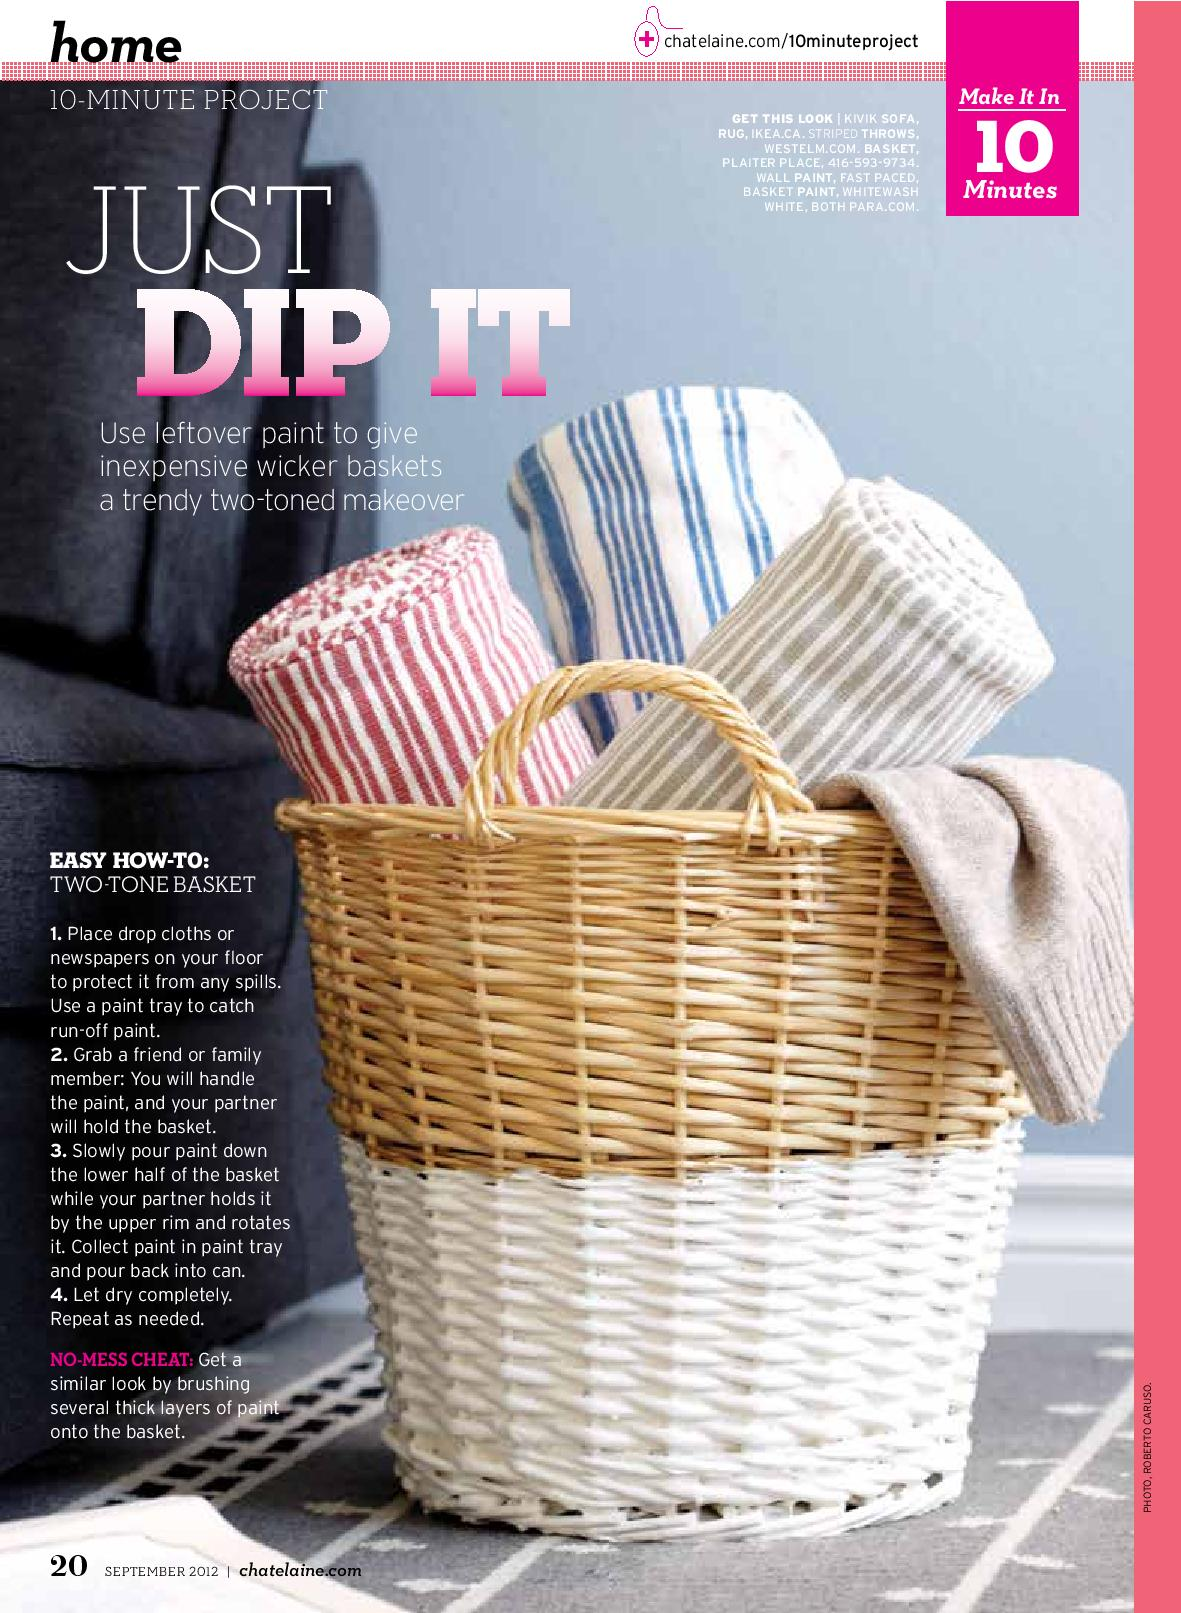 dipped basket sept 2012-page-001.jpg